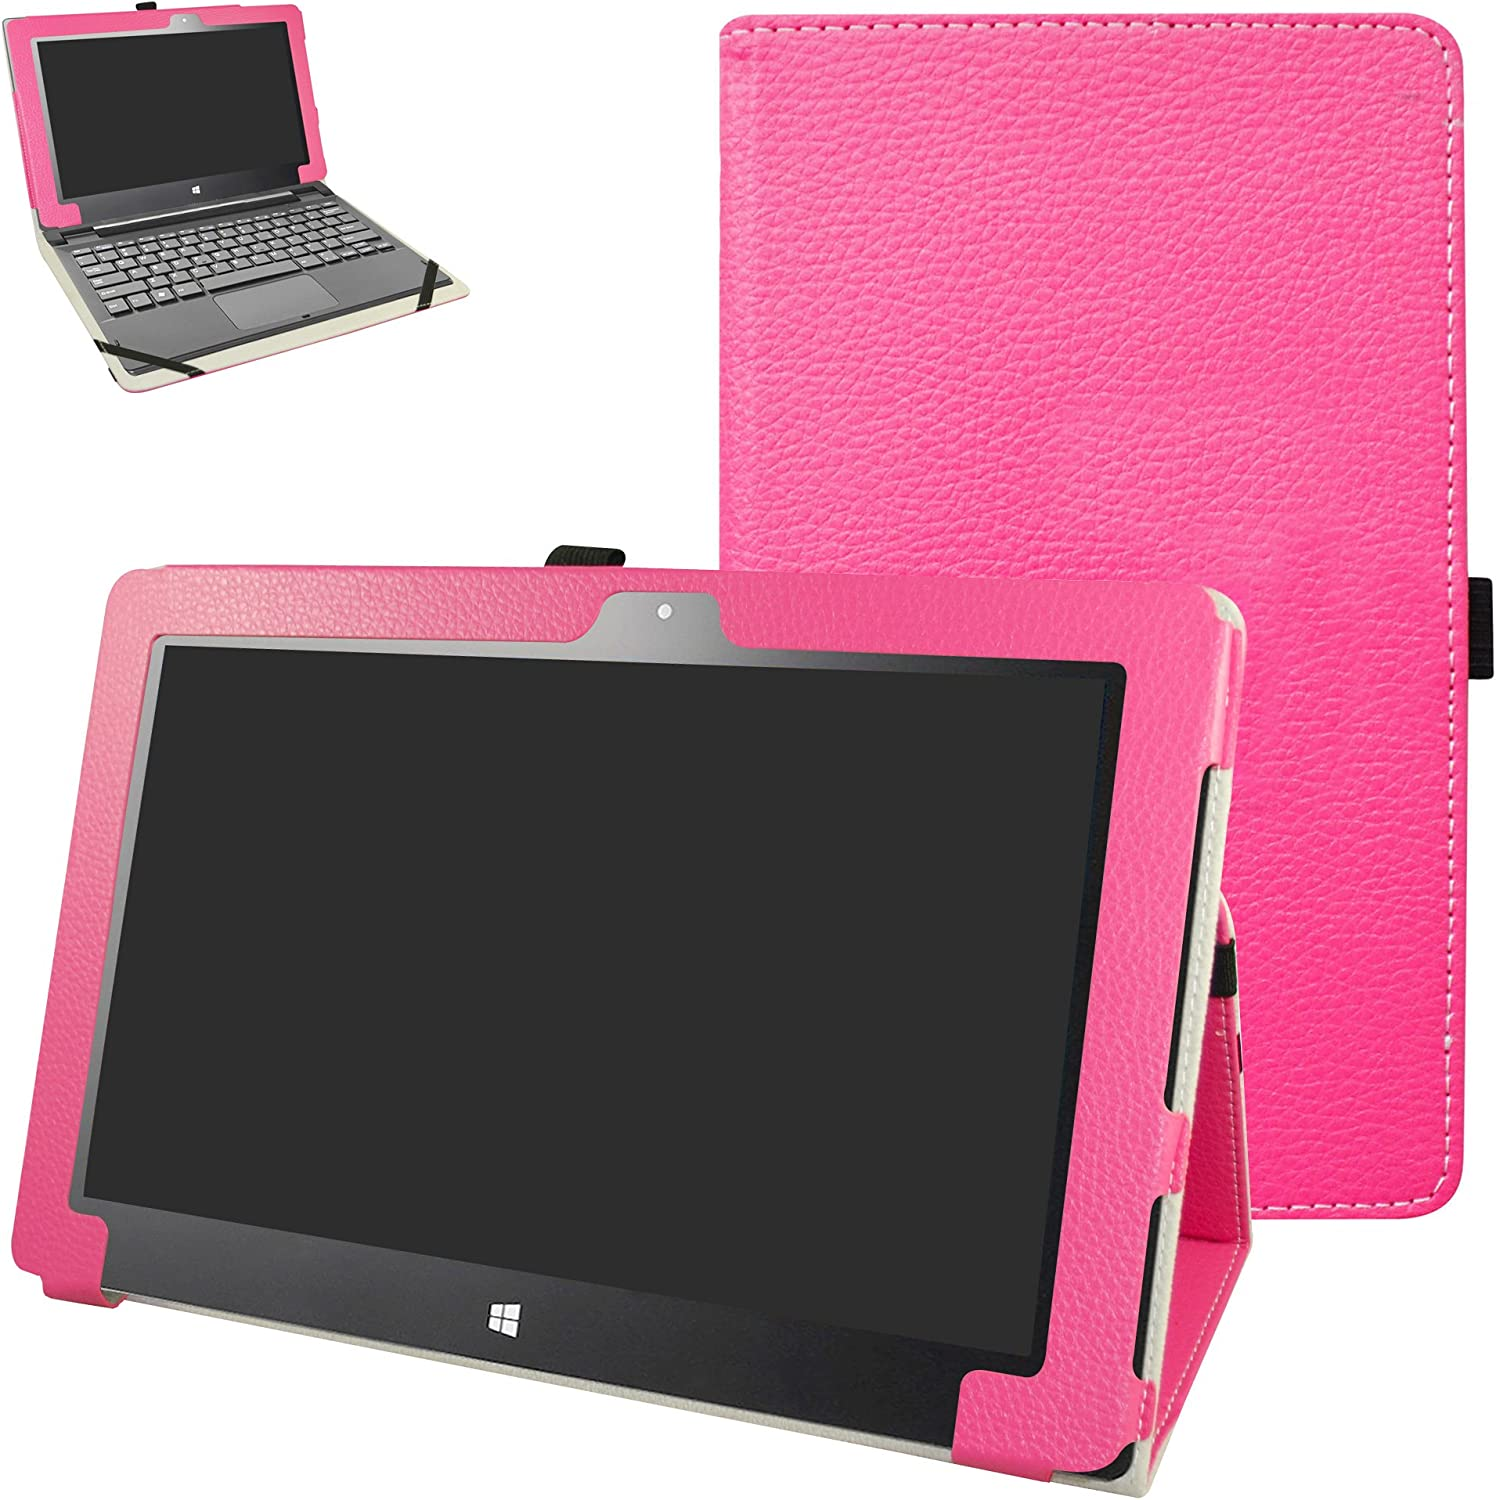 """Insignia Flex 11.6 NS-P11W6100 Case,Mama Mouth PU Leather Folio 2-Folding Stand Cover for 11.6"""" Insignia Flex 11.6 NS-P11W6100 Windows 10 Tablet,Rose Red"""